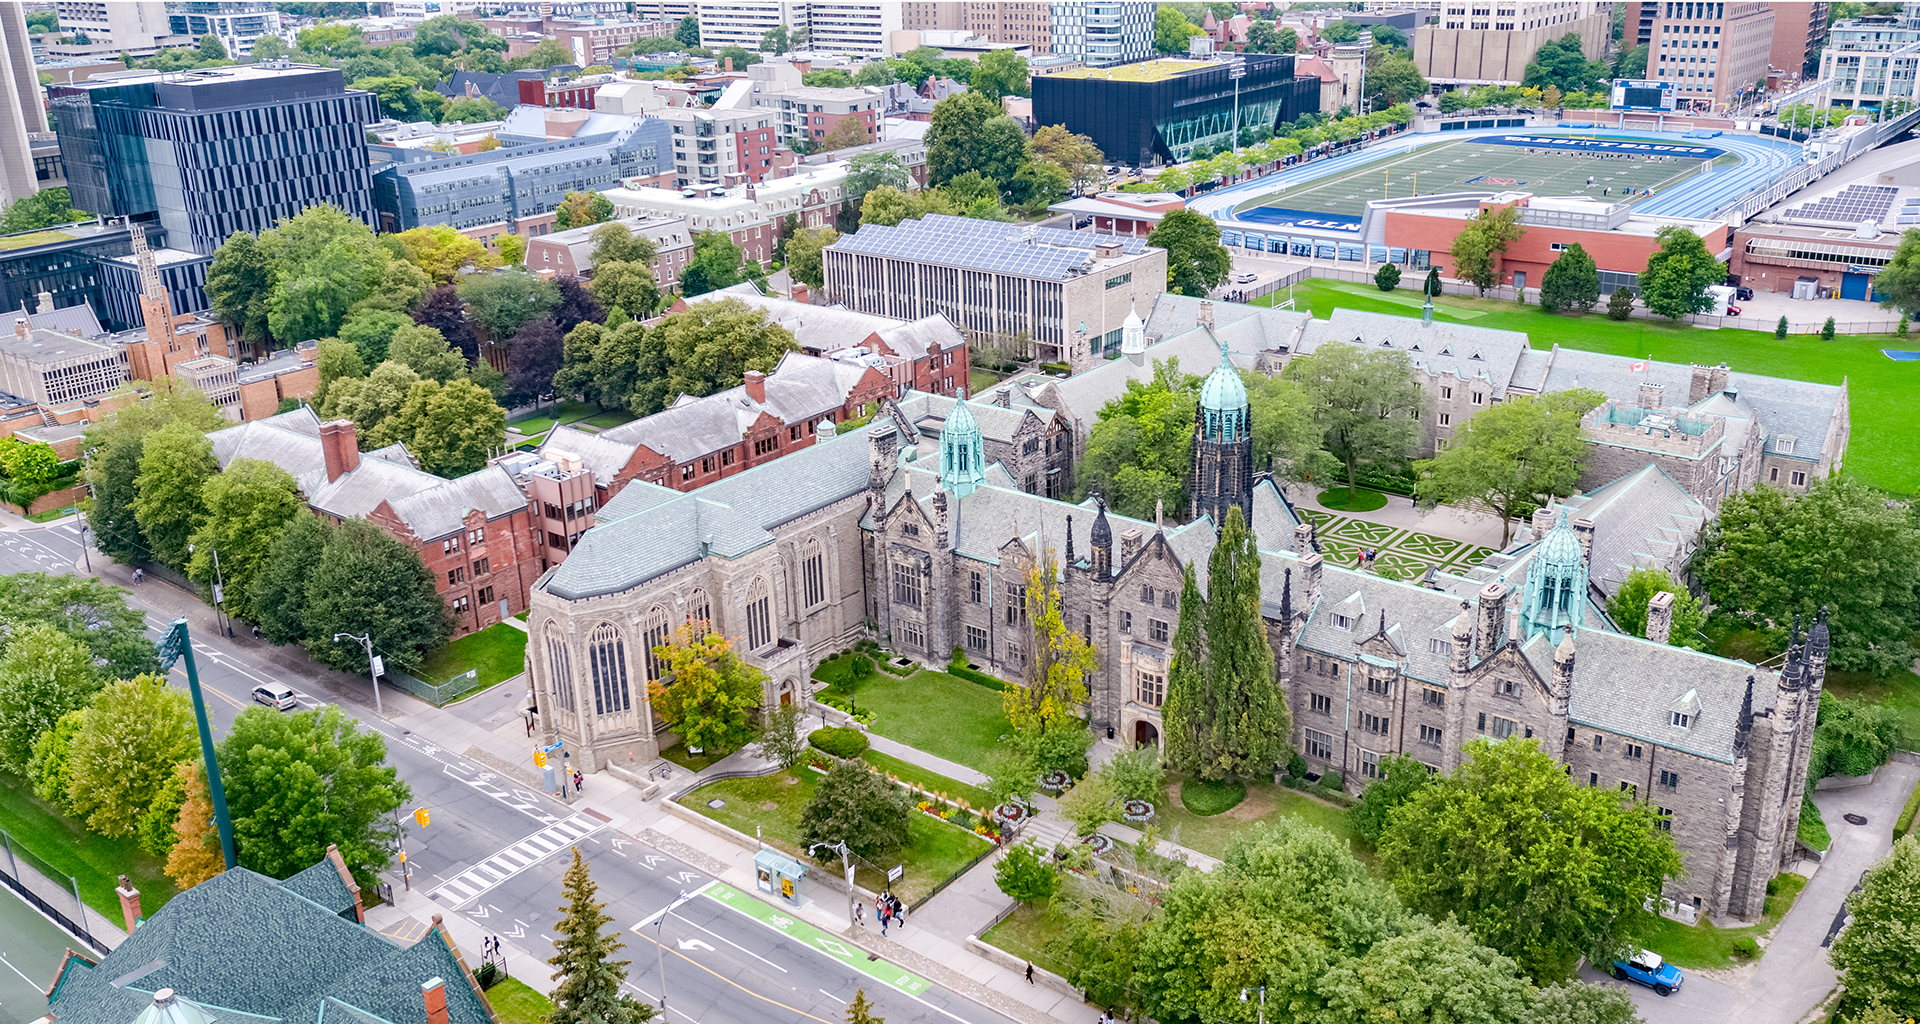 Ariel view of the Trinity College campus